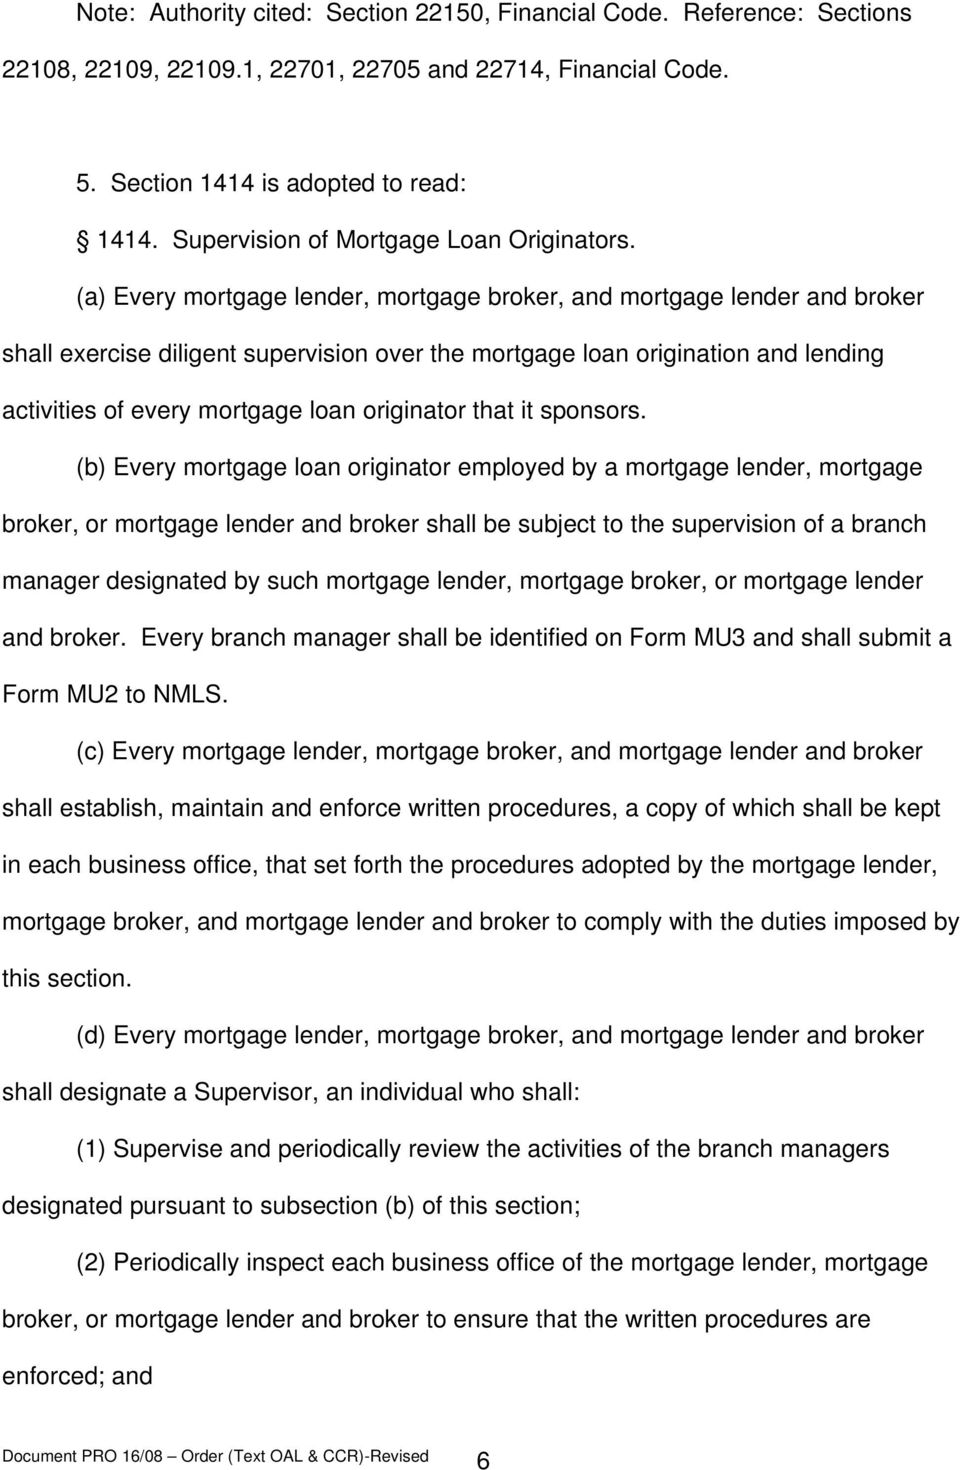 (a) Every mortgage lender, mortgage broker, and mortgage lender and broker shall exercise diligent supervision over the mortgage loan origination and lending activities of every mortgage loan